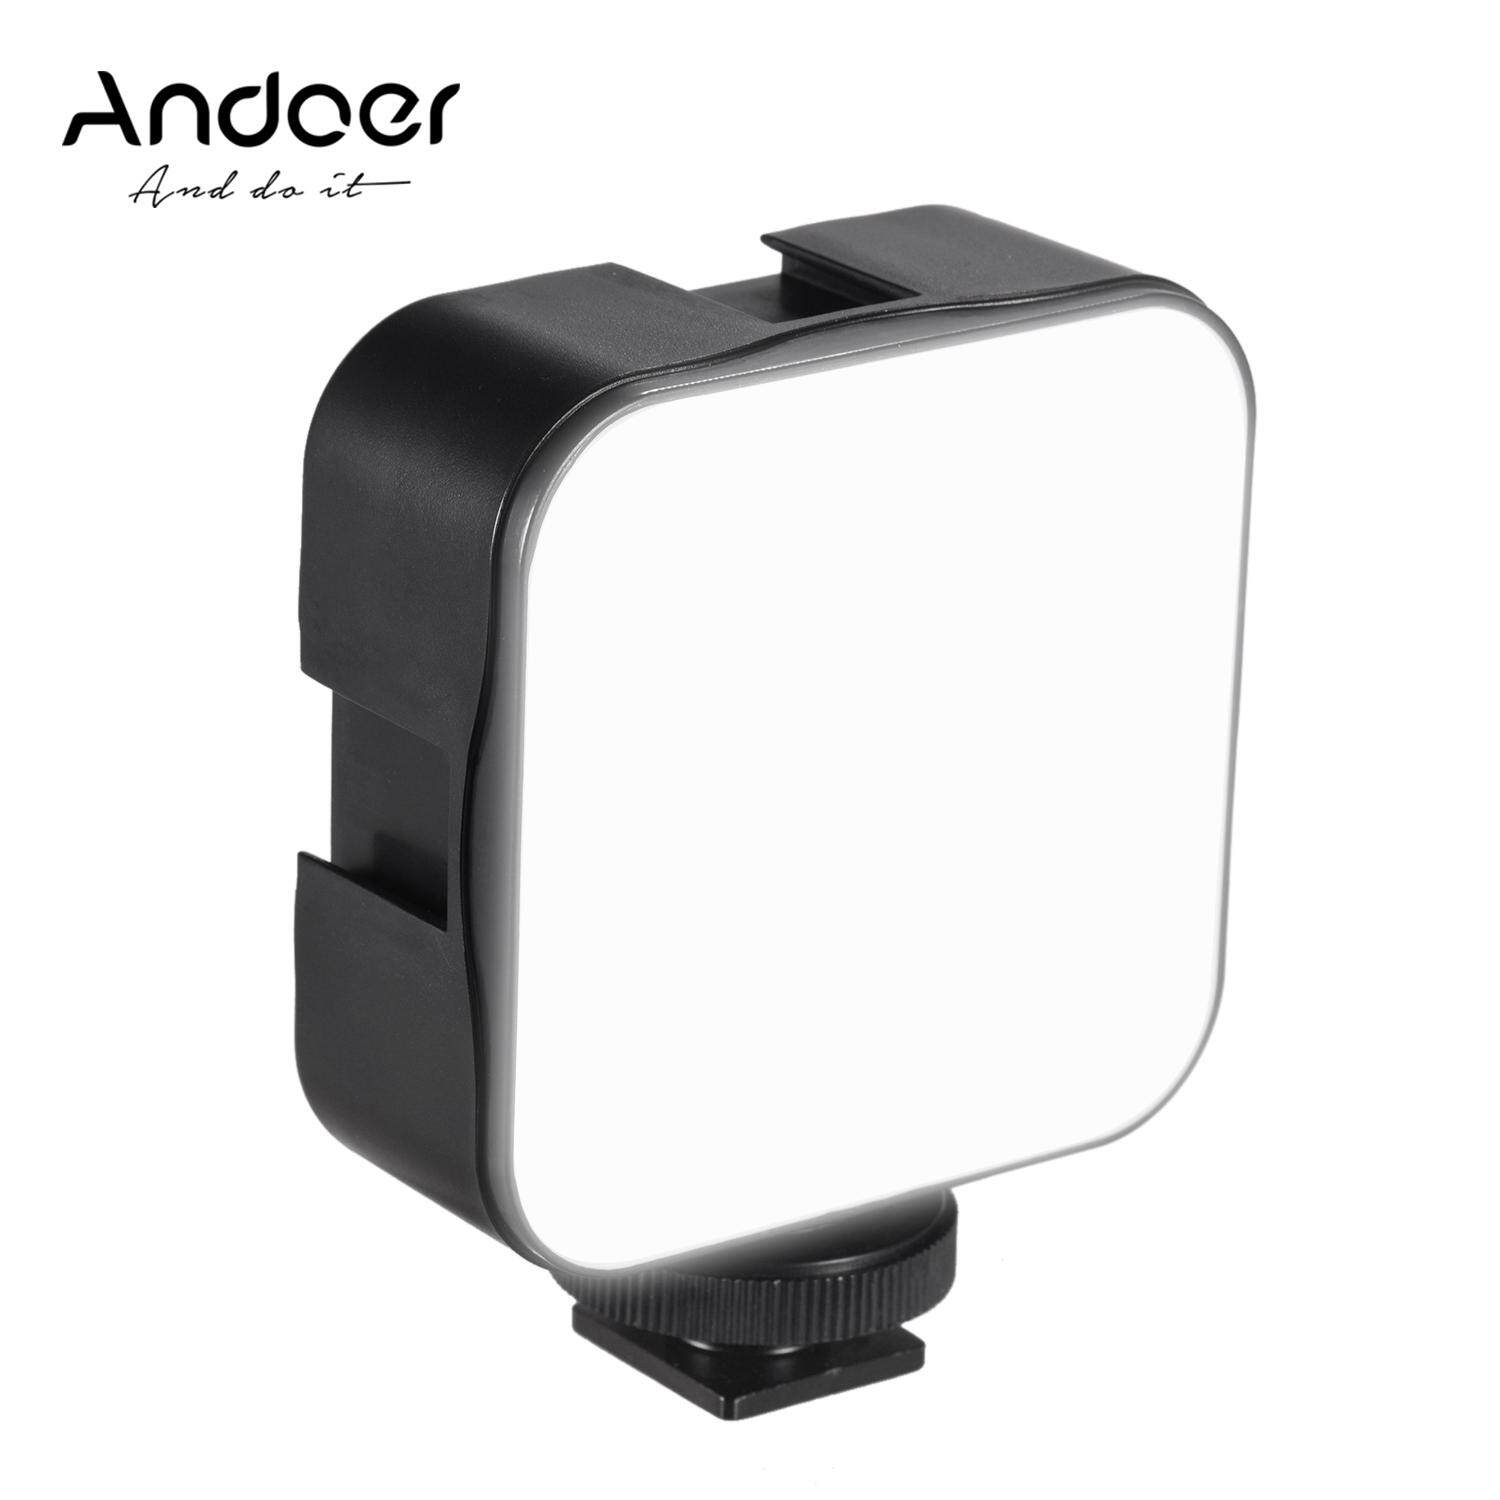 Andoer Mini Led Video Light Photography Fill-In Lamp 6500k Dimmable 5w With Cold Shoe Mount Adapter For Canon Nikon Sony Dslr Camera.